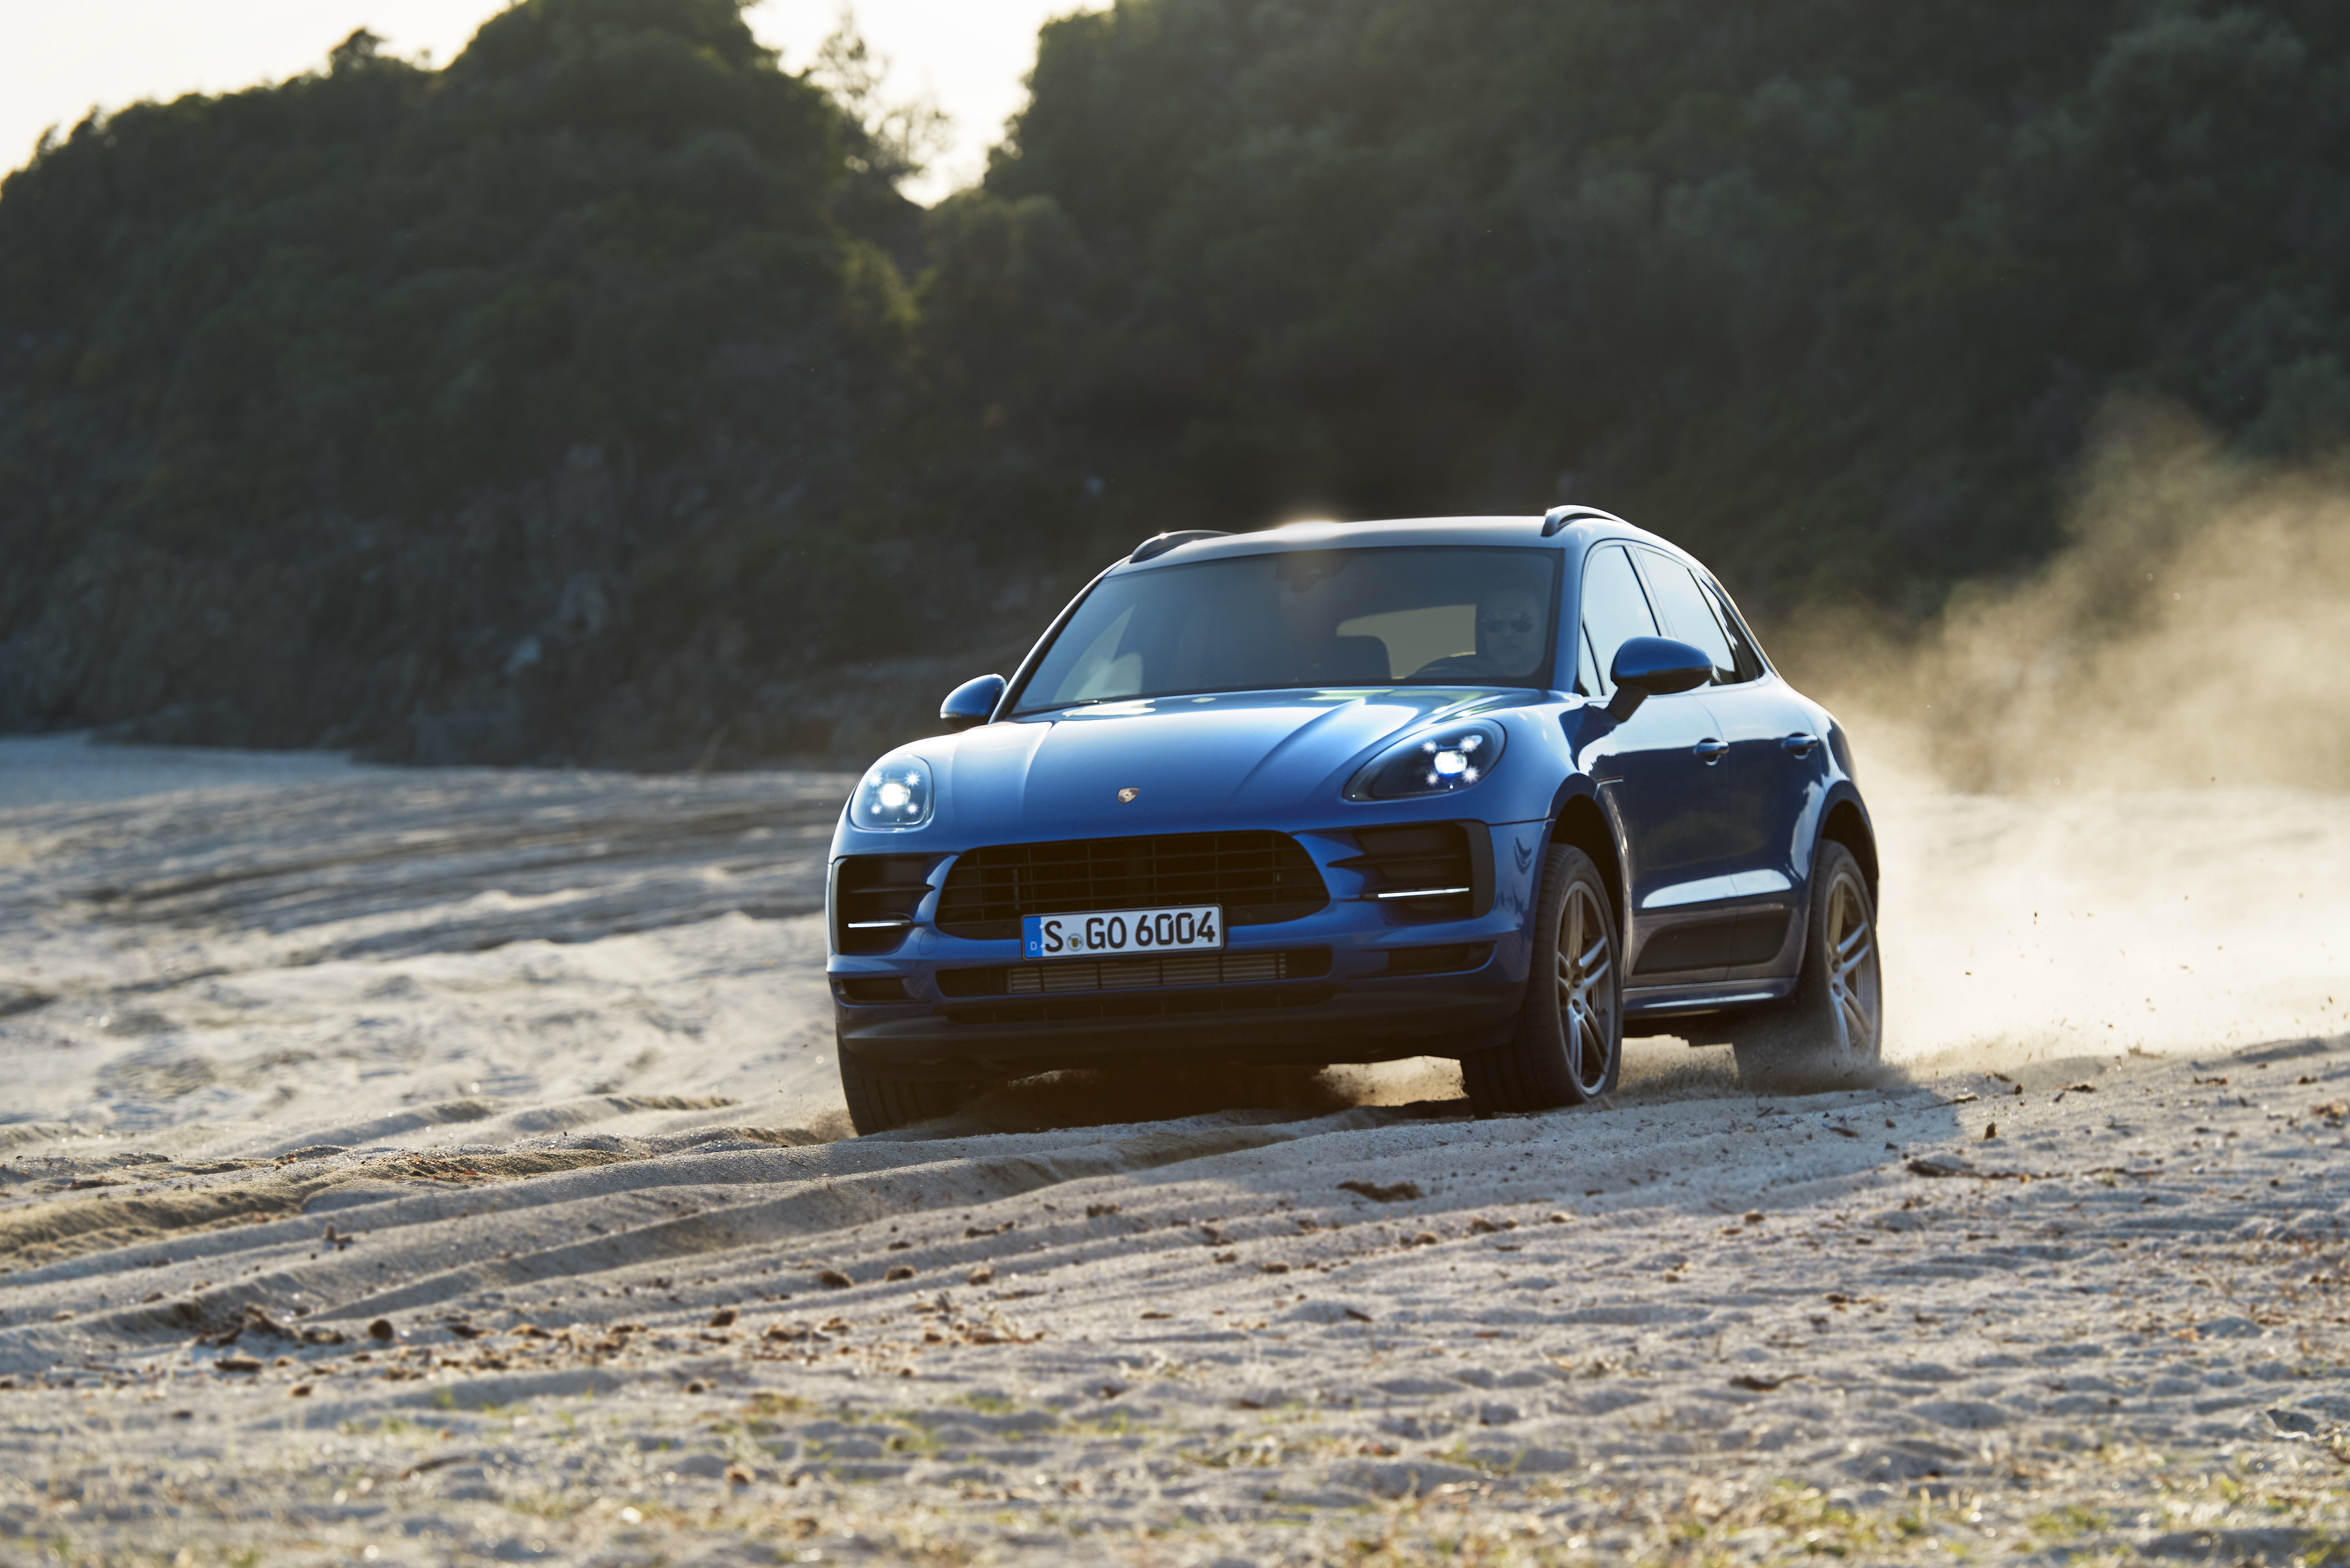 Porsche Macan S – sports car performance in a medium-sized SUV